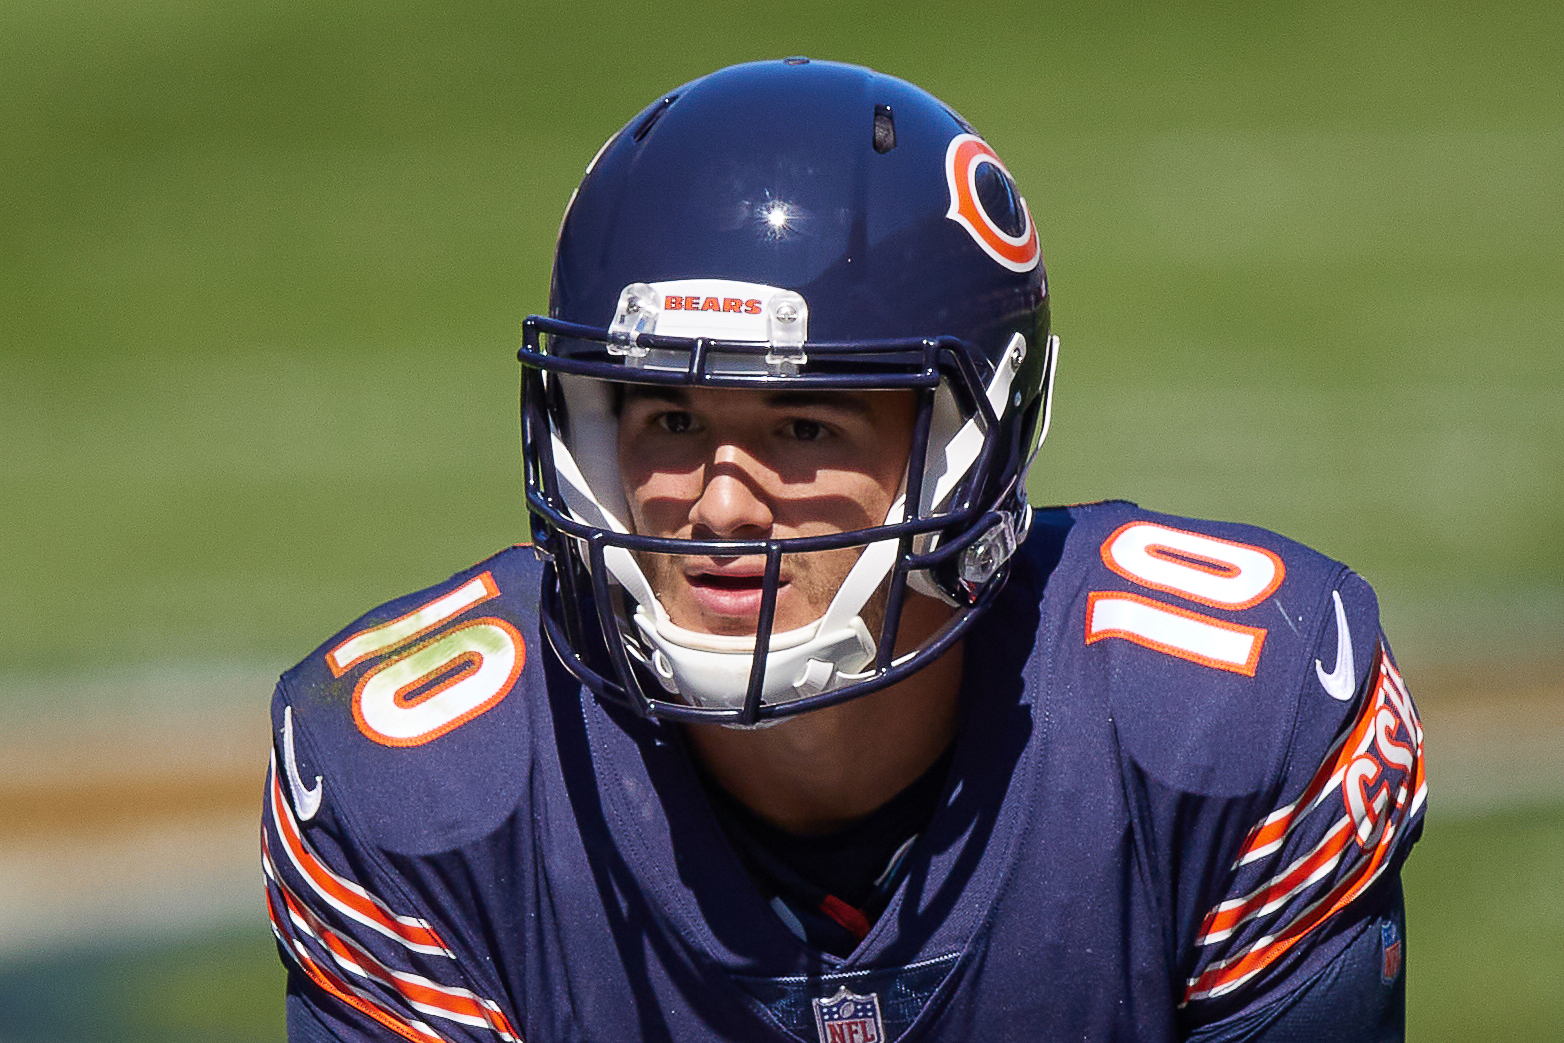 Bears Coach Matt Nagy Announces Mitch Trubisky Will Start vs. Packers